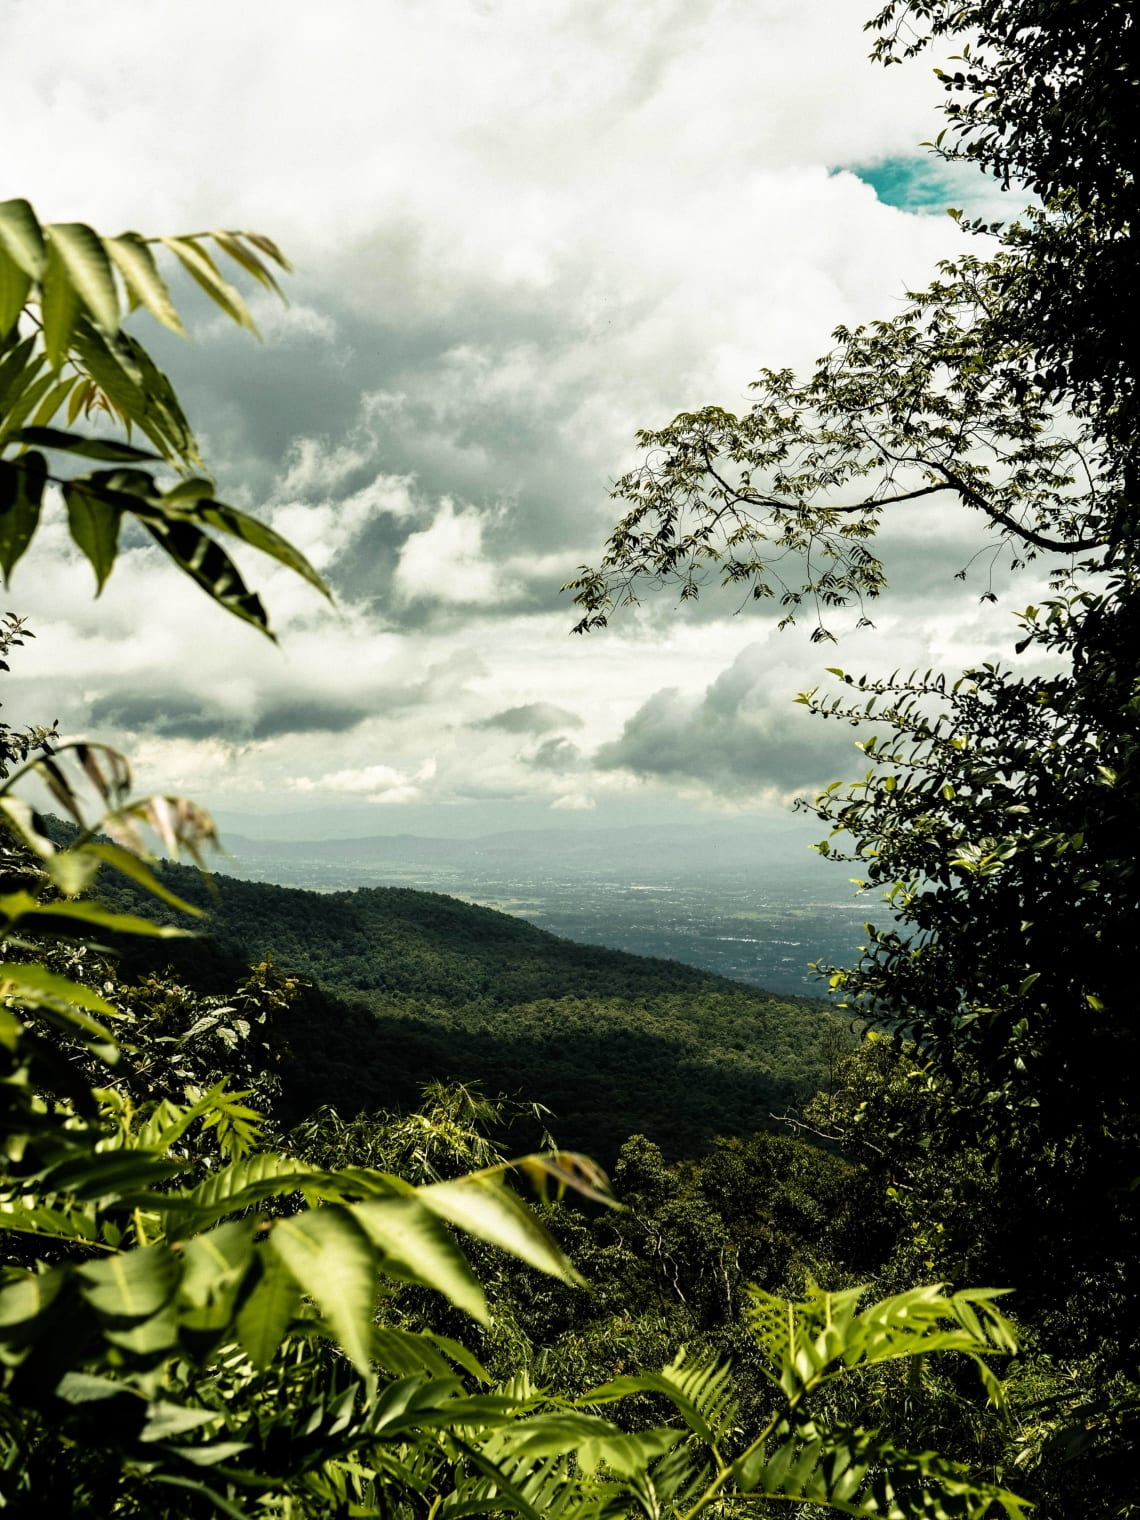 Best places to visit in Thailand: Chiang Mai